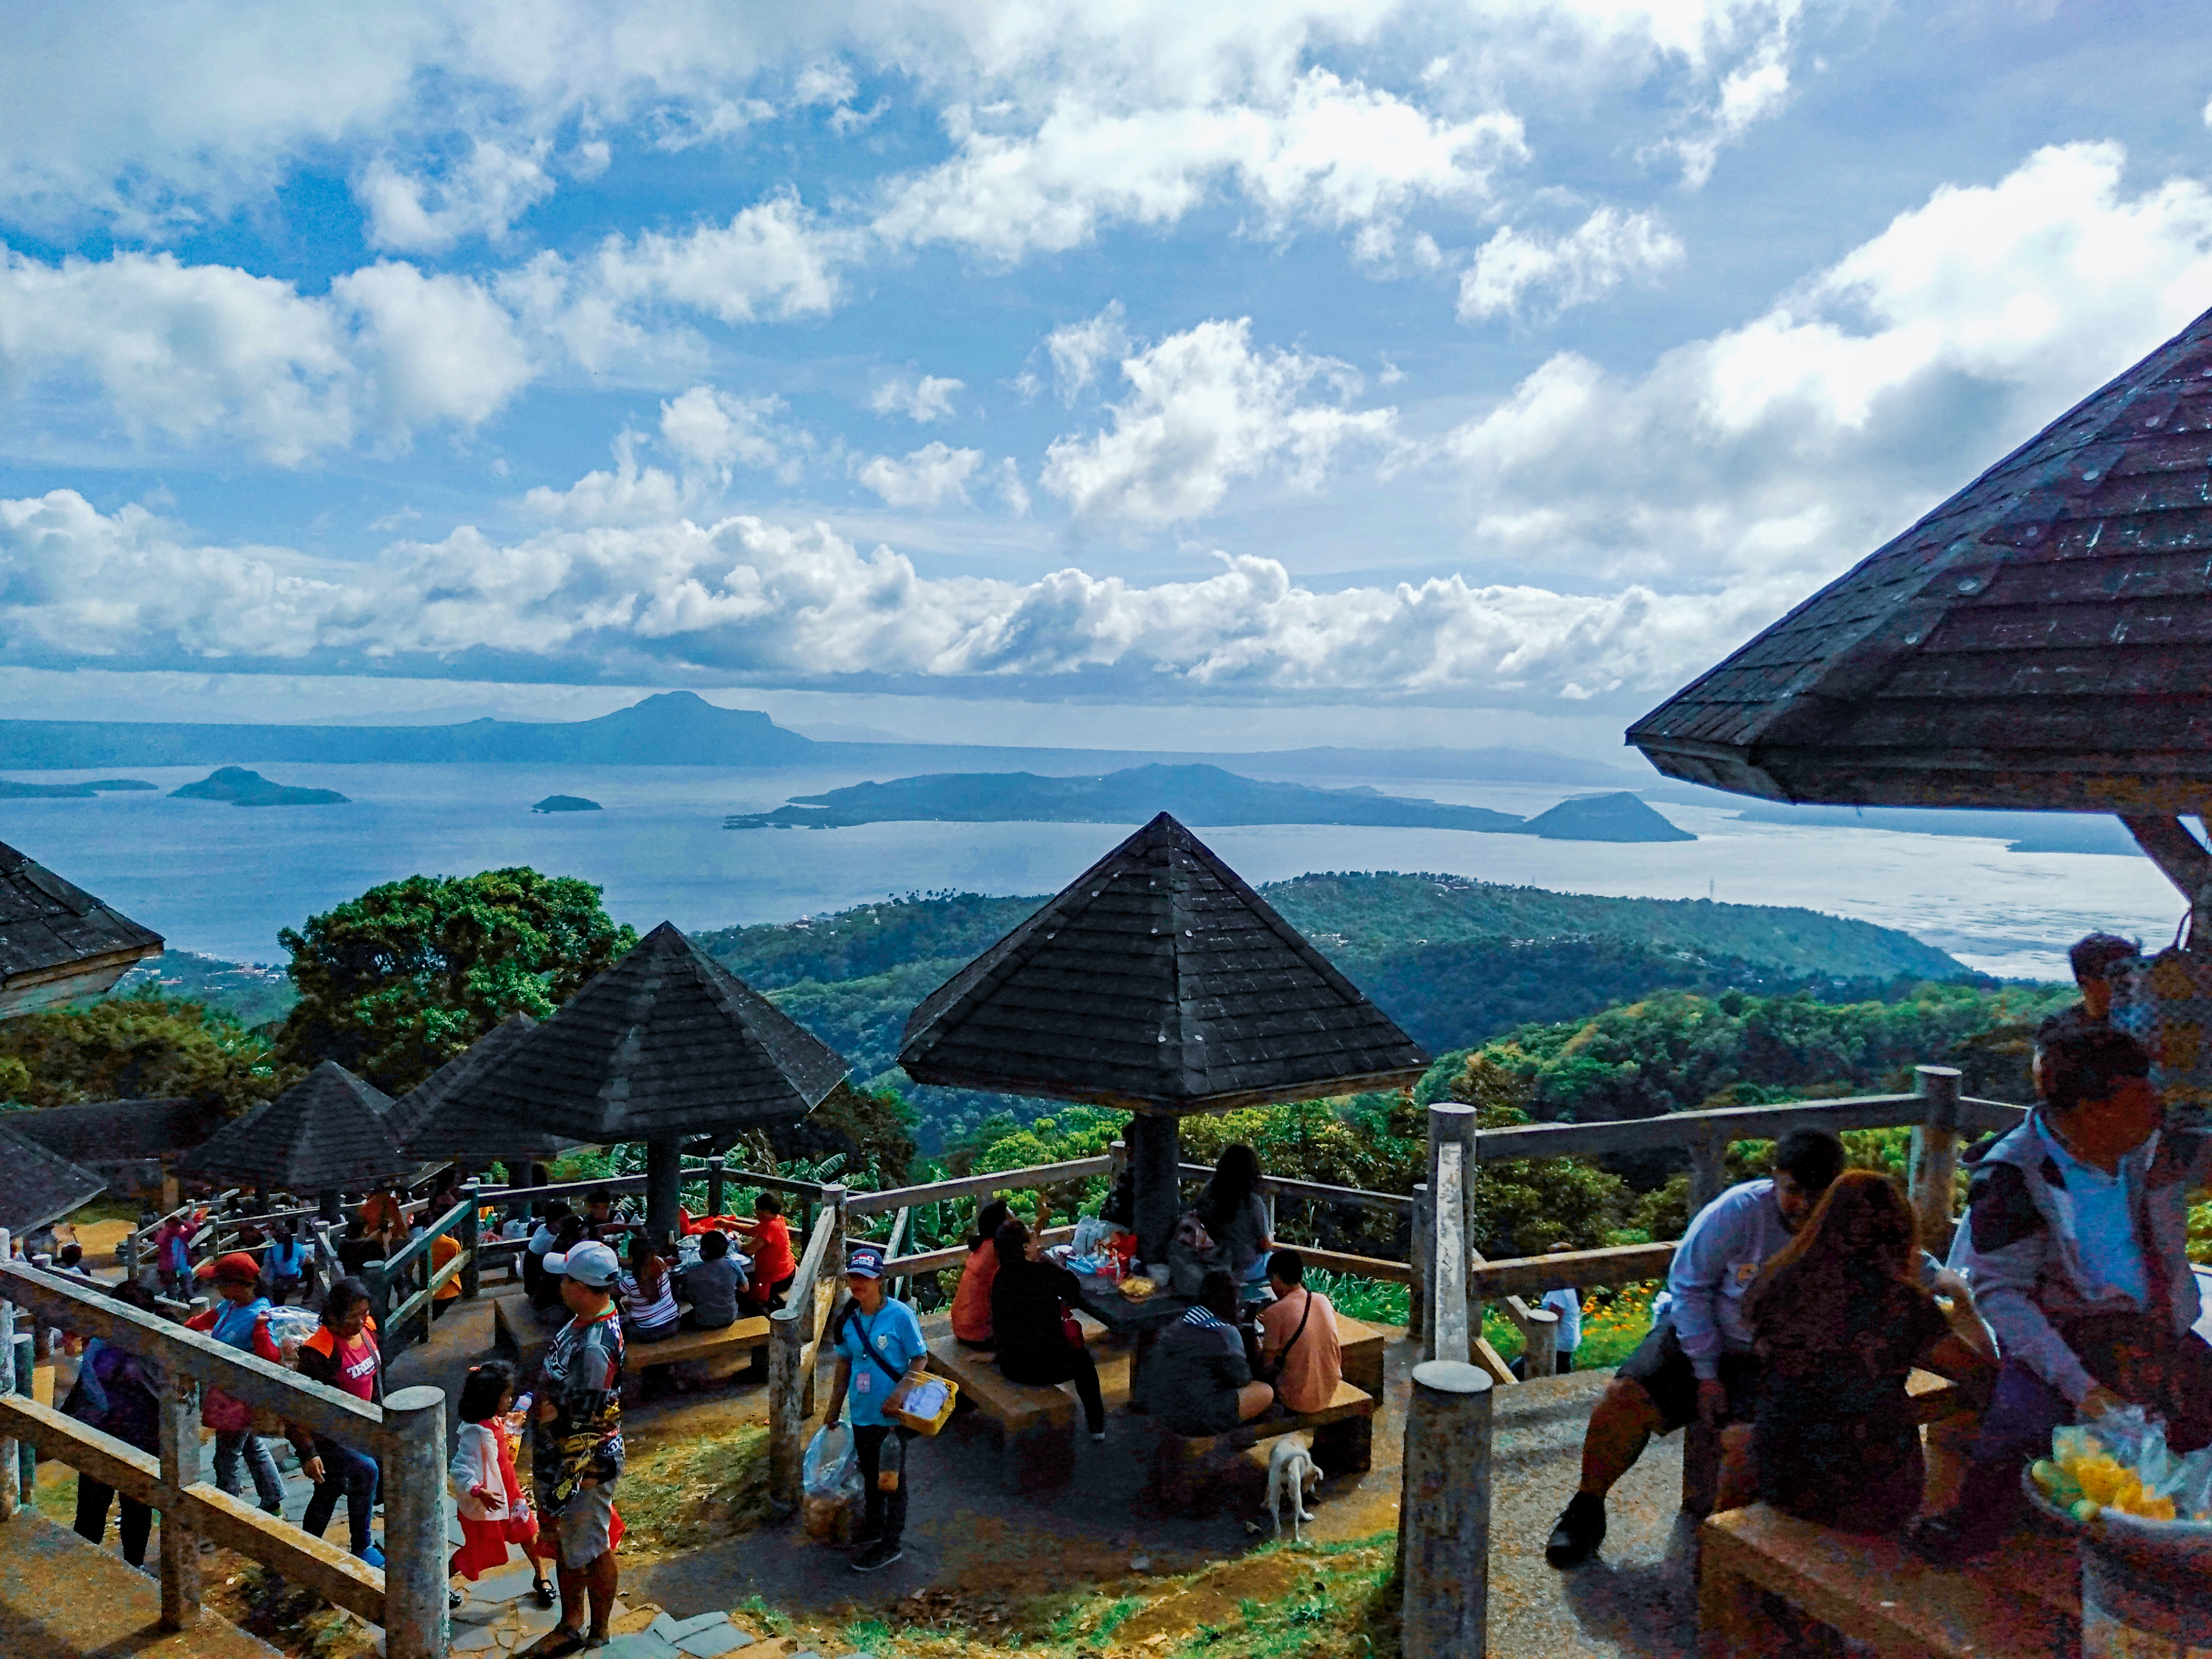 File:Taal Lake from Tagaytay Picnic Grove.jpg - Wikimedia Commons